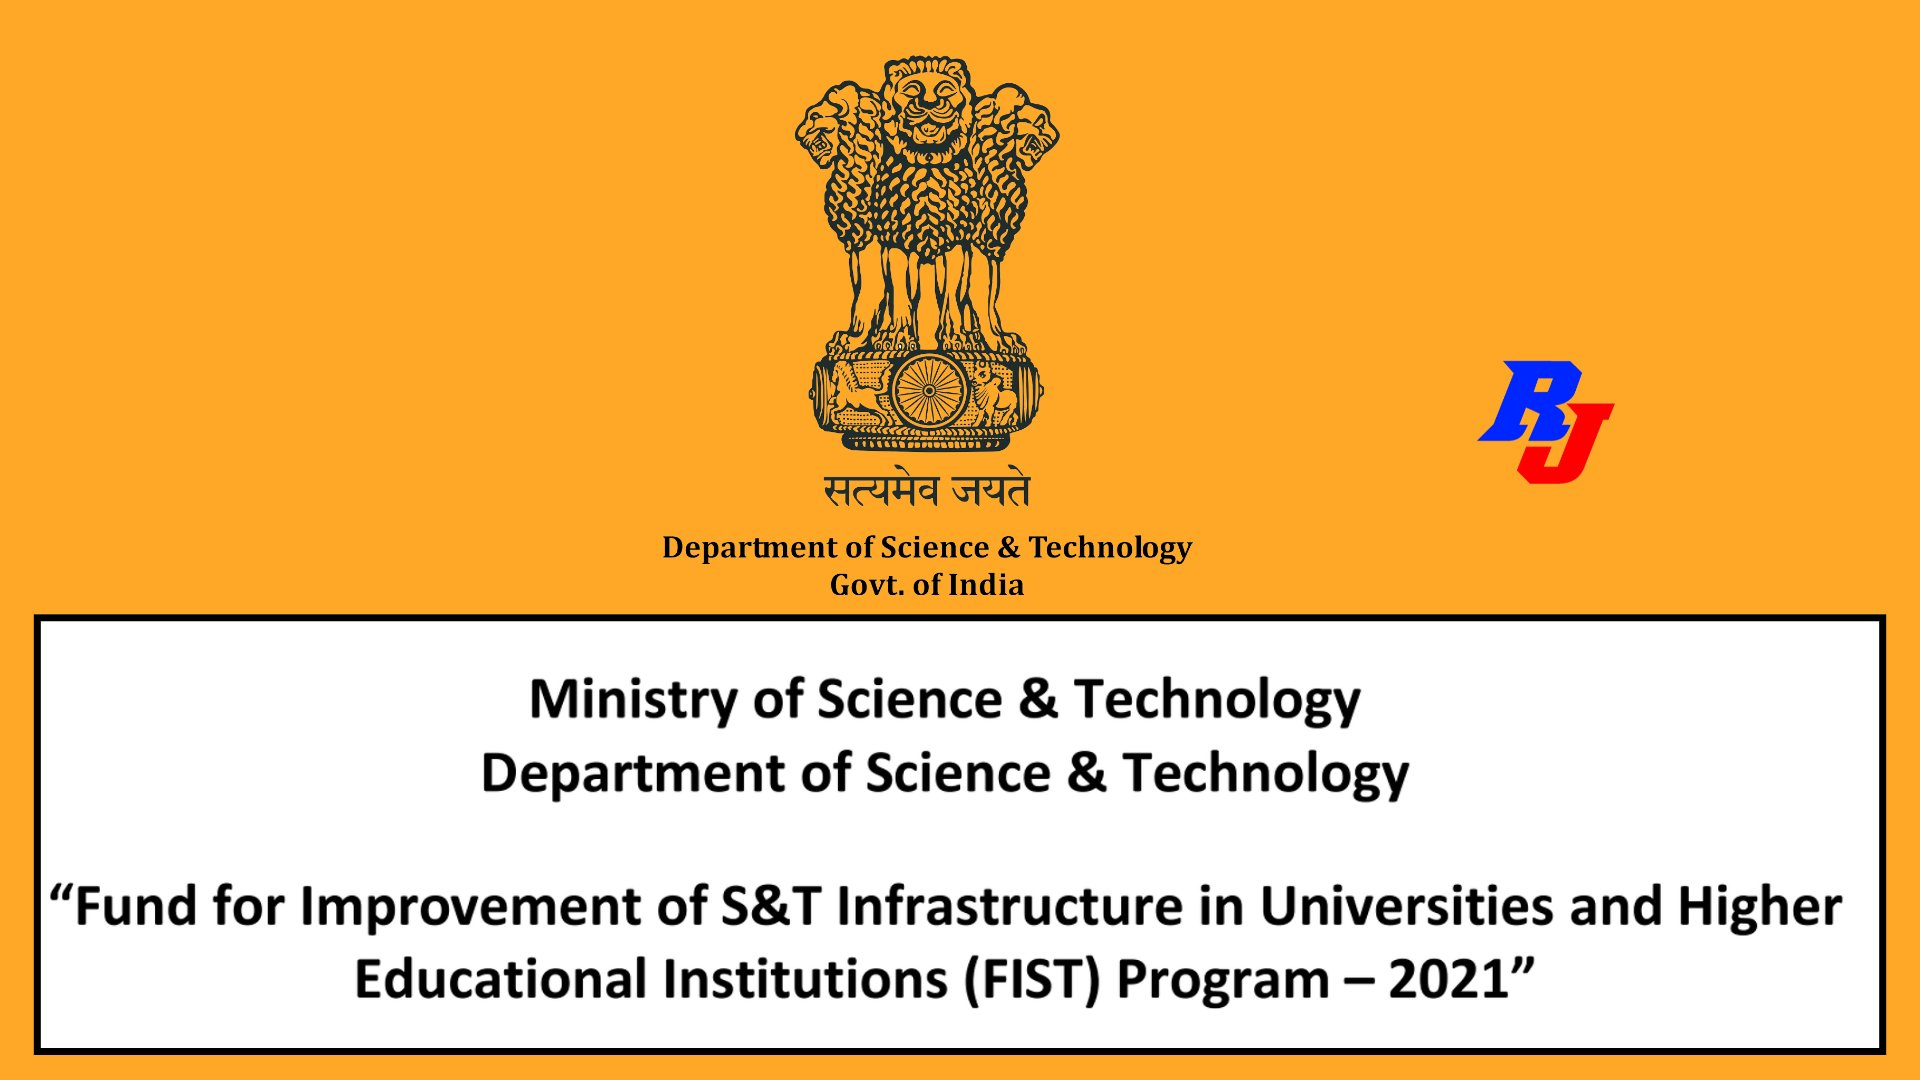 Call for Proposals – DST, FIST (Fund for Improvement of S&T Infrastructure